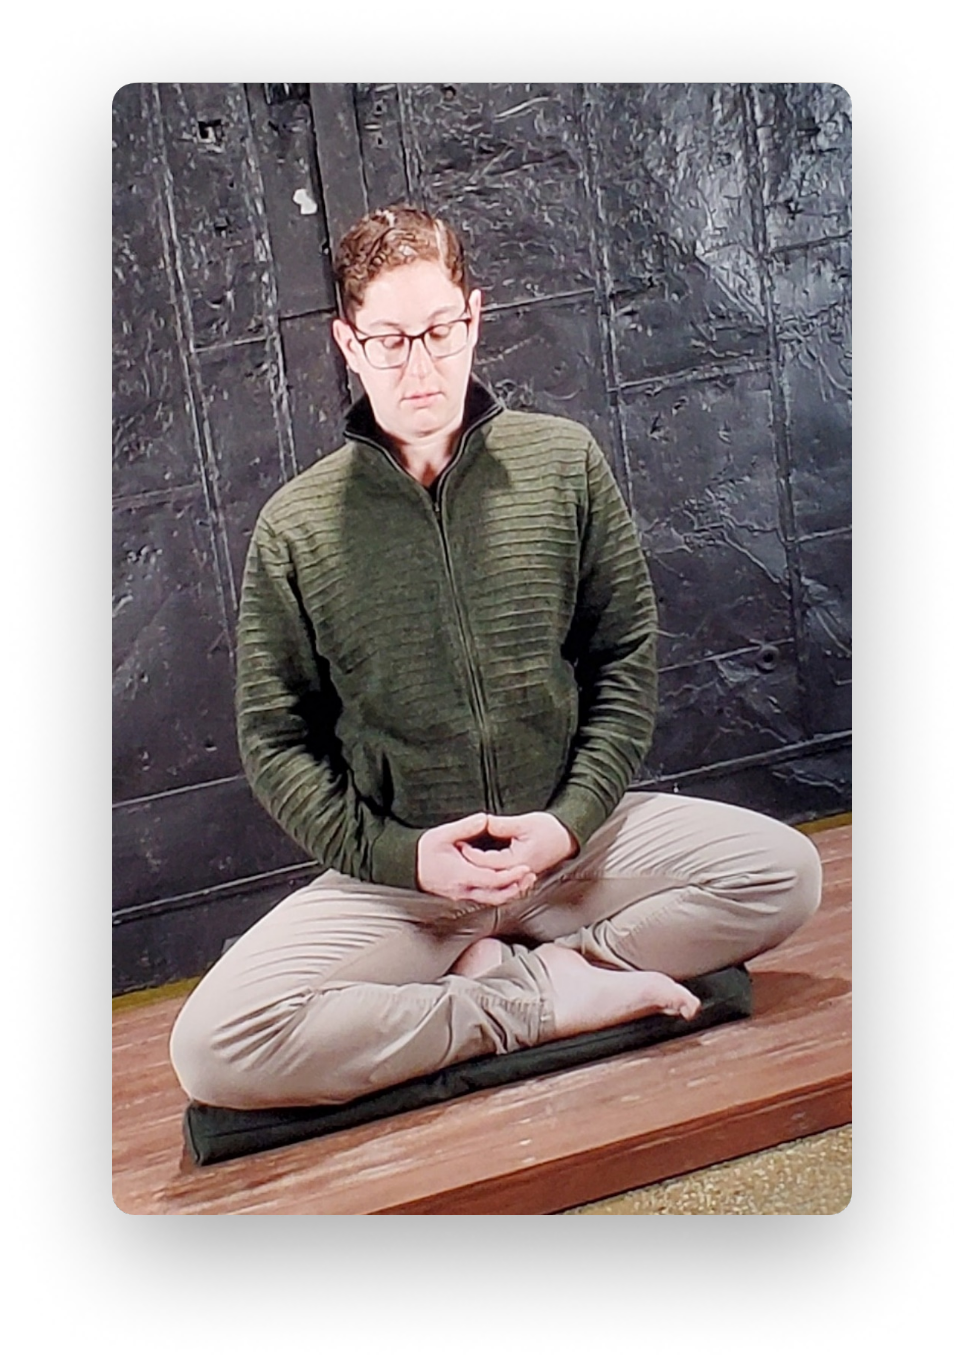 Photo of Adam Weinberg meditating in a half lotus position.